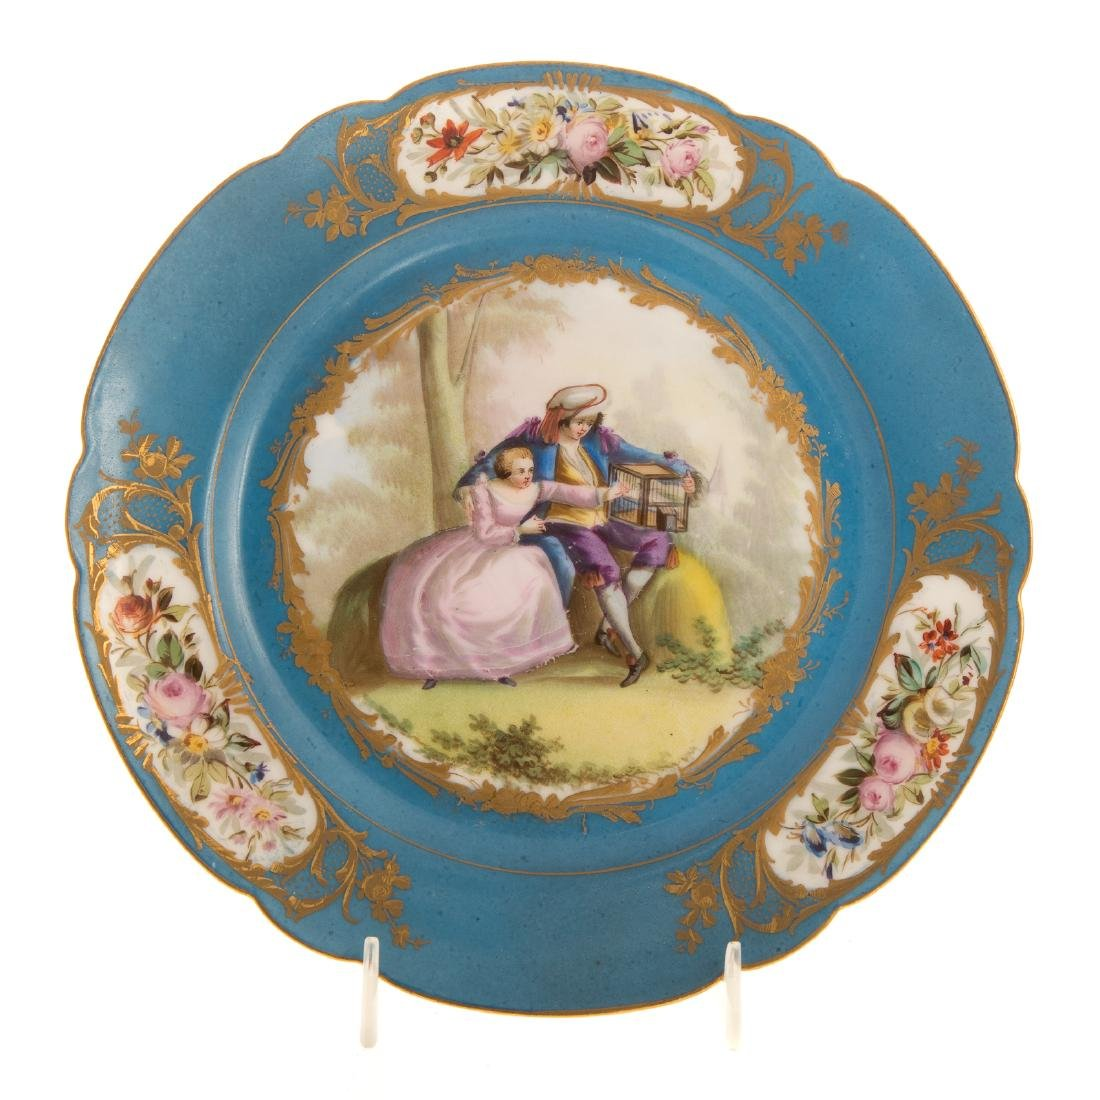 12 Sevres porcelain plates and charger - 5